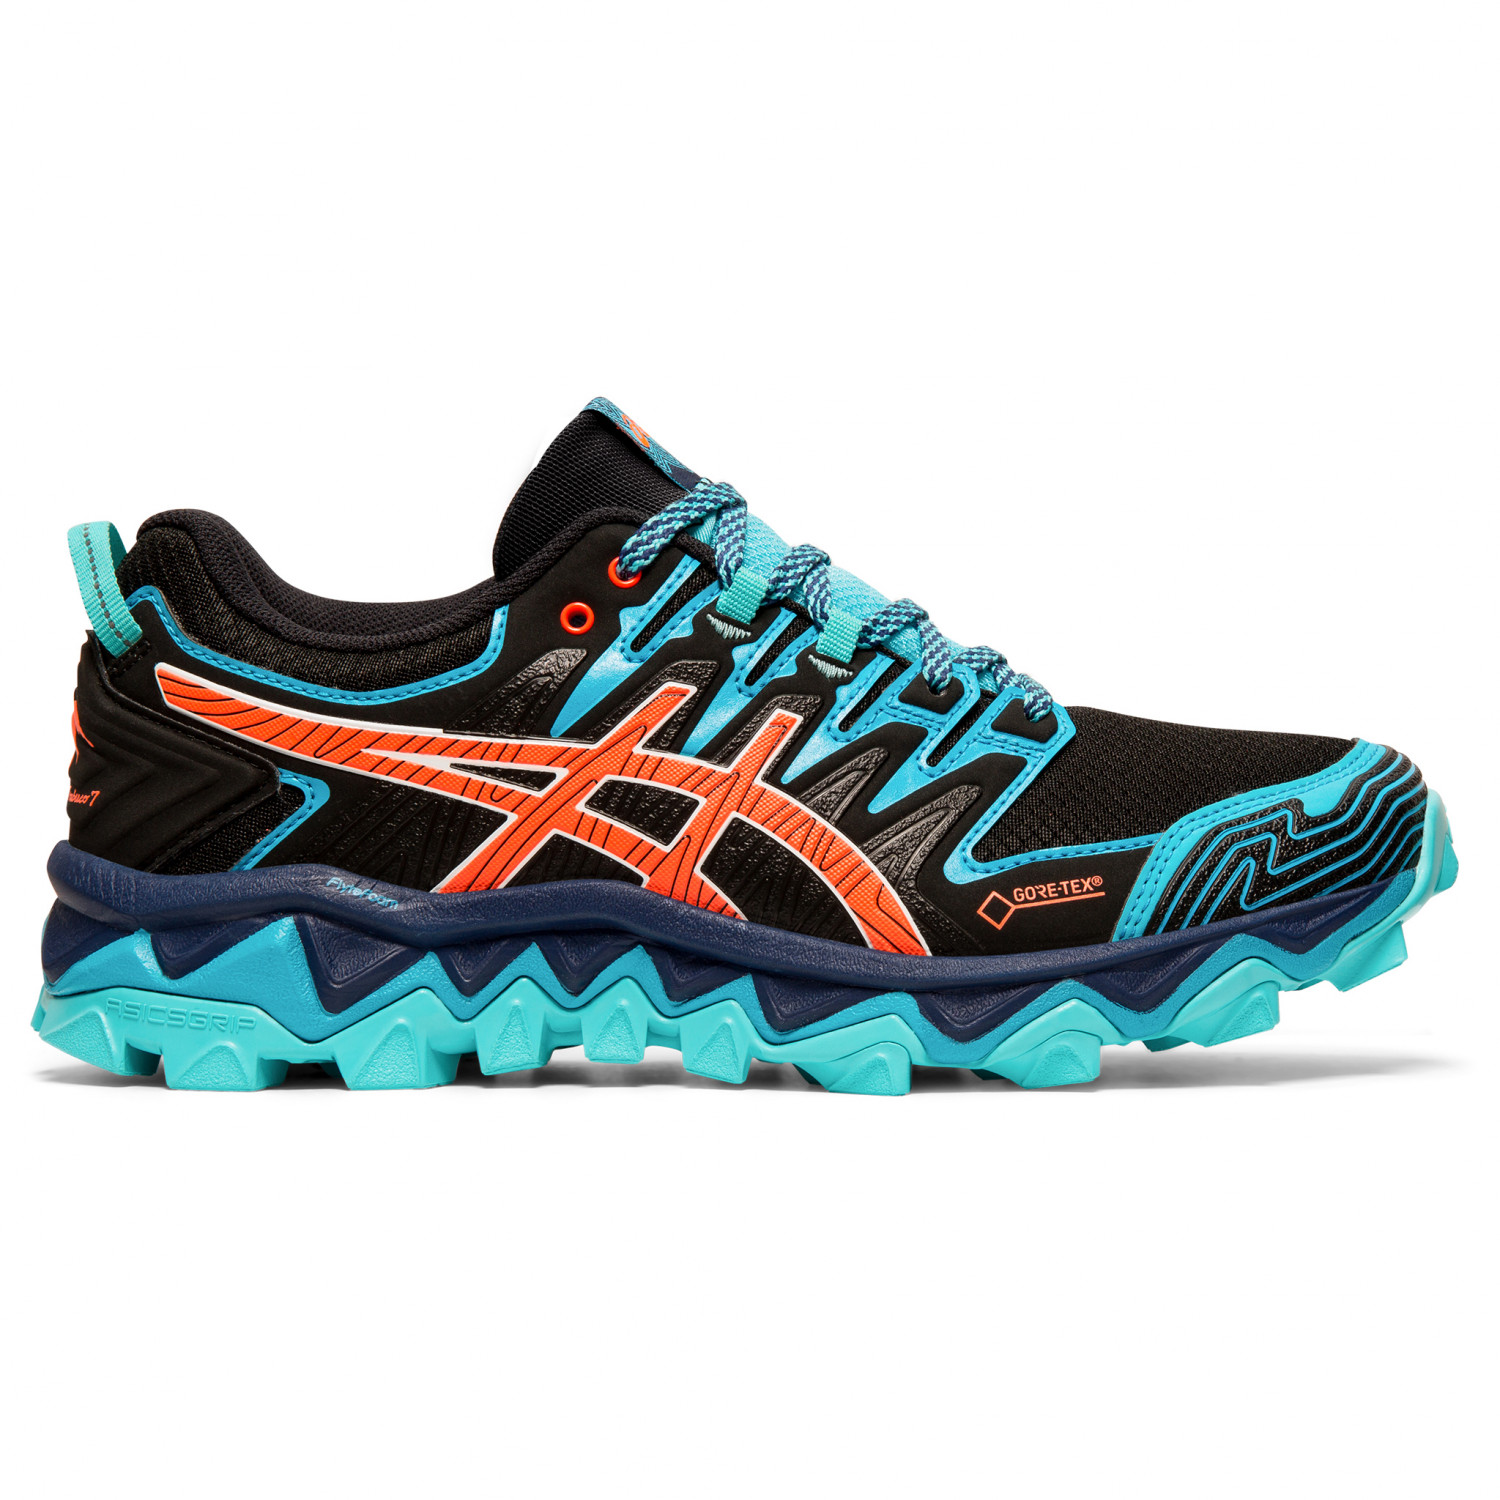 Details about Asics Womens Gel Fujitrabuco 7 Gtx Running Shoes Trail Waterproof Outdoor